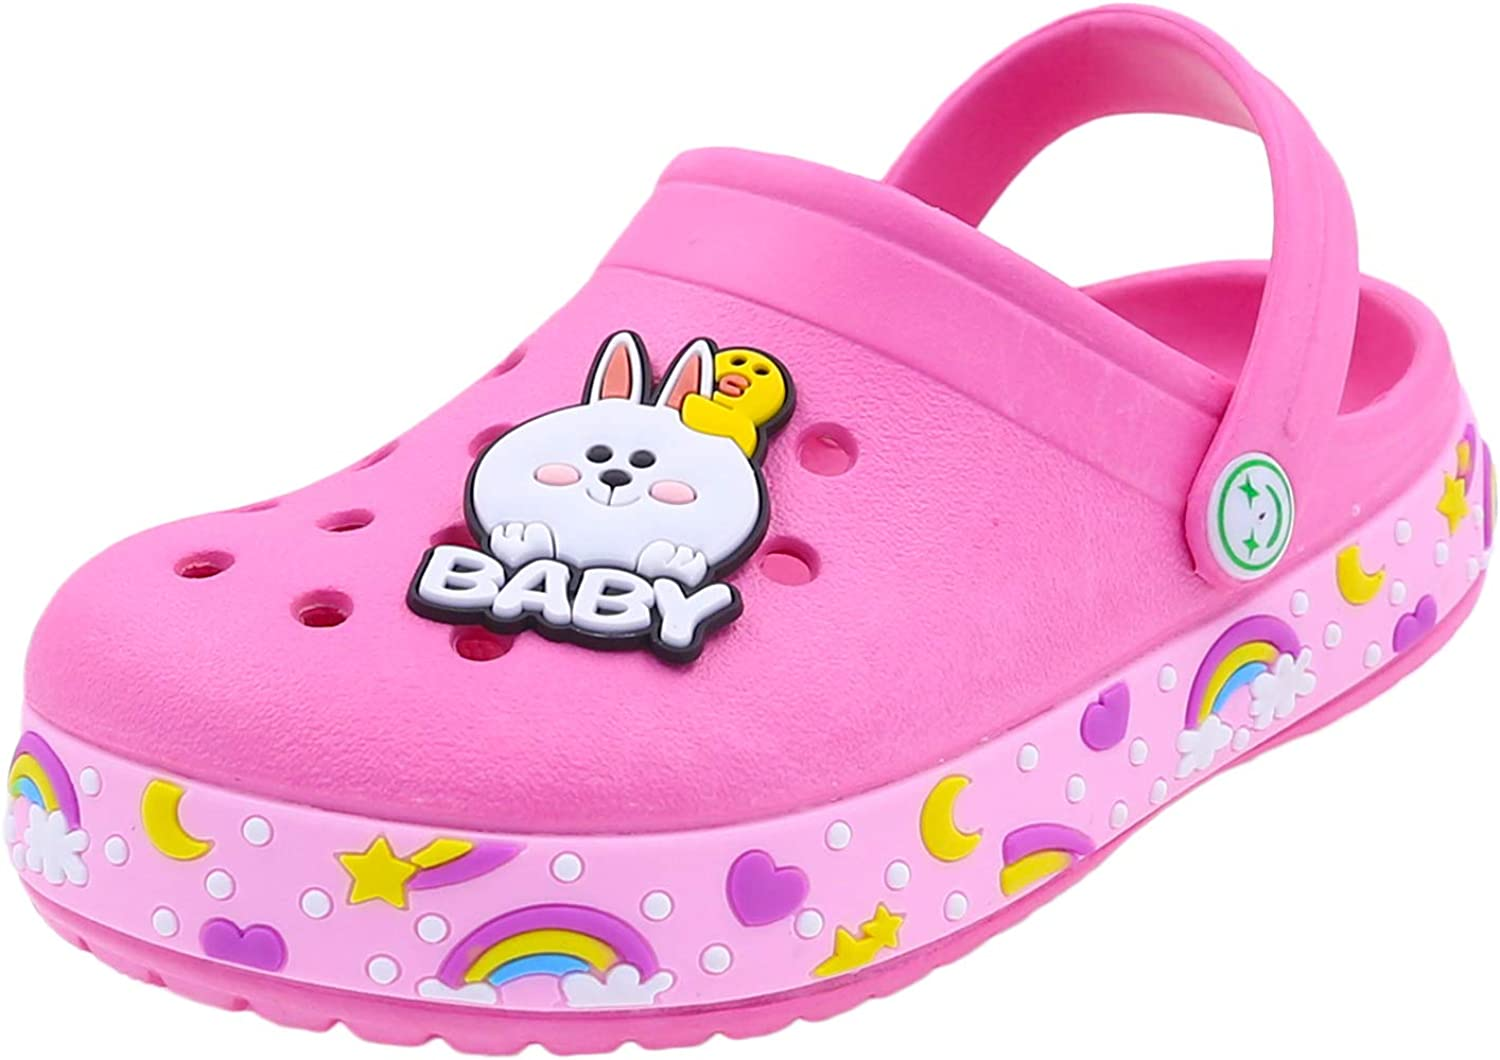 Toddlers Garden Clogs Slipper Kid's Spring new work Unicorn Sandals Clog Today's only Cartoon